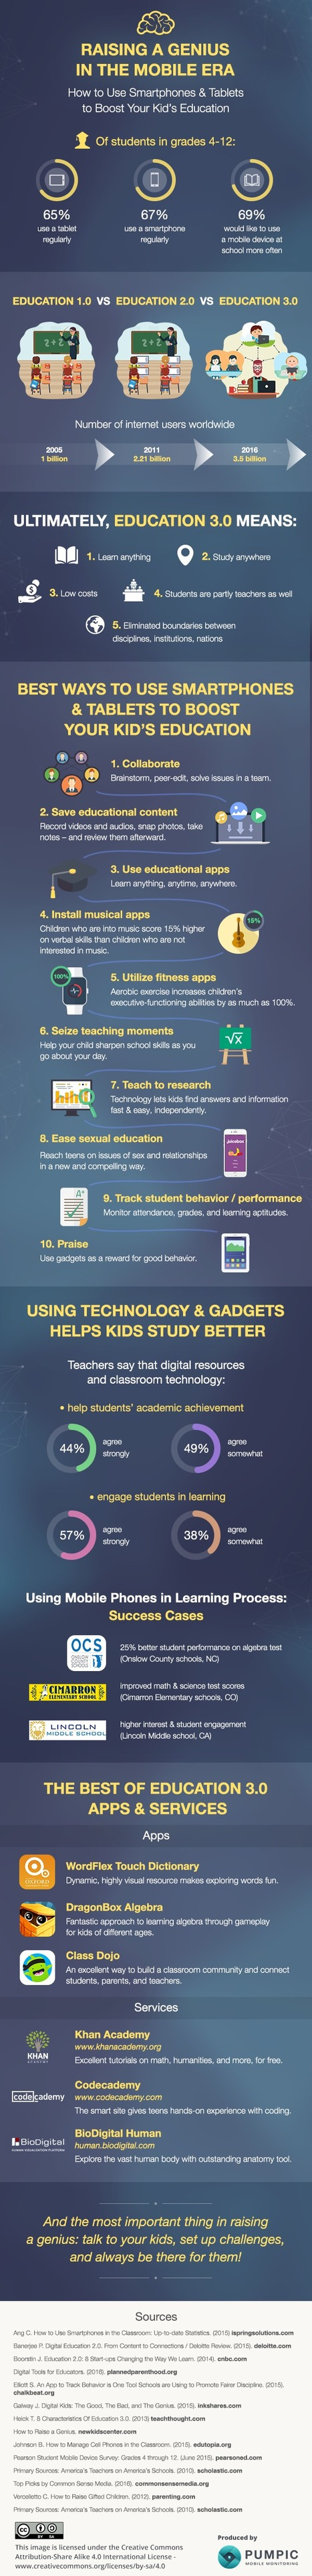 10 Good Ways to Boost Kids Learning Using Mobile Technology | Neoeducation | Scoop.it